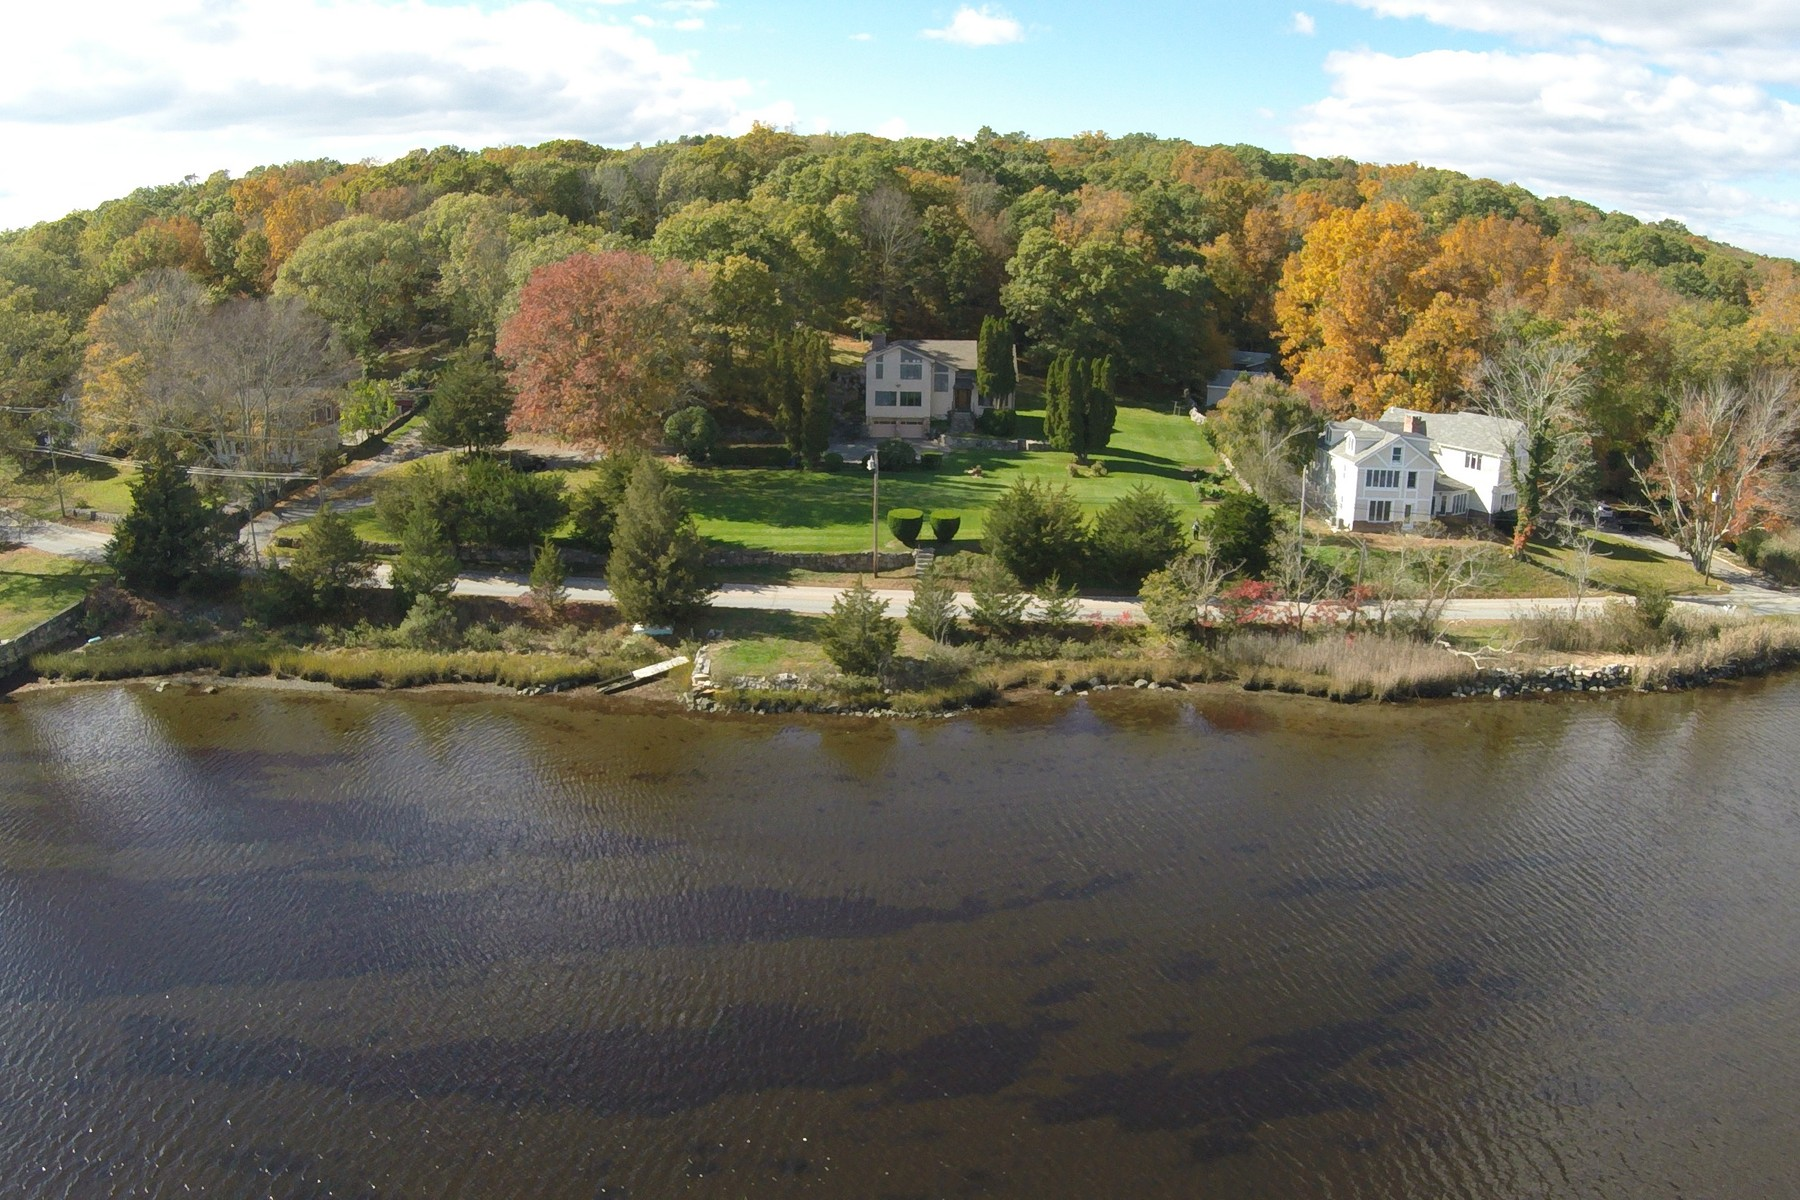 Casa Unifamiliar por un Venta en Beautiful River Views 743 River Road Groton, Connecticut 06355 Estados Unidos